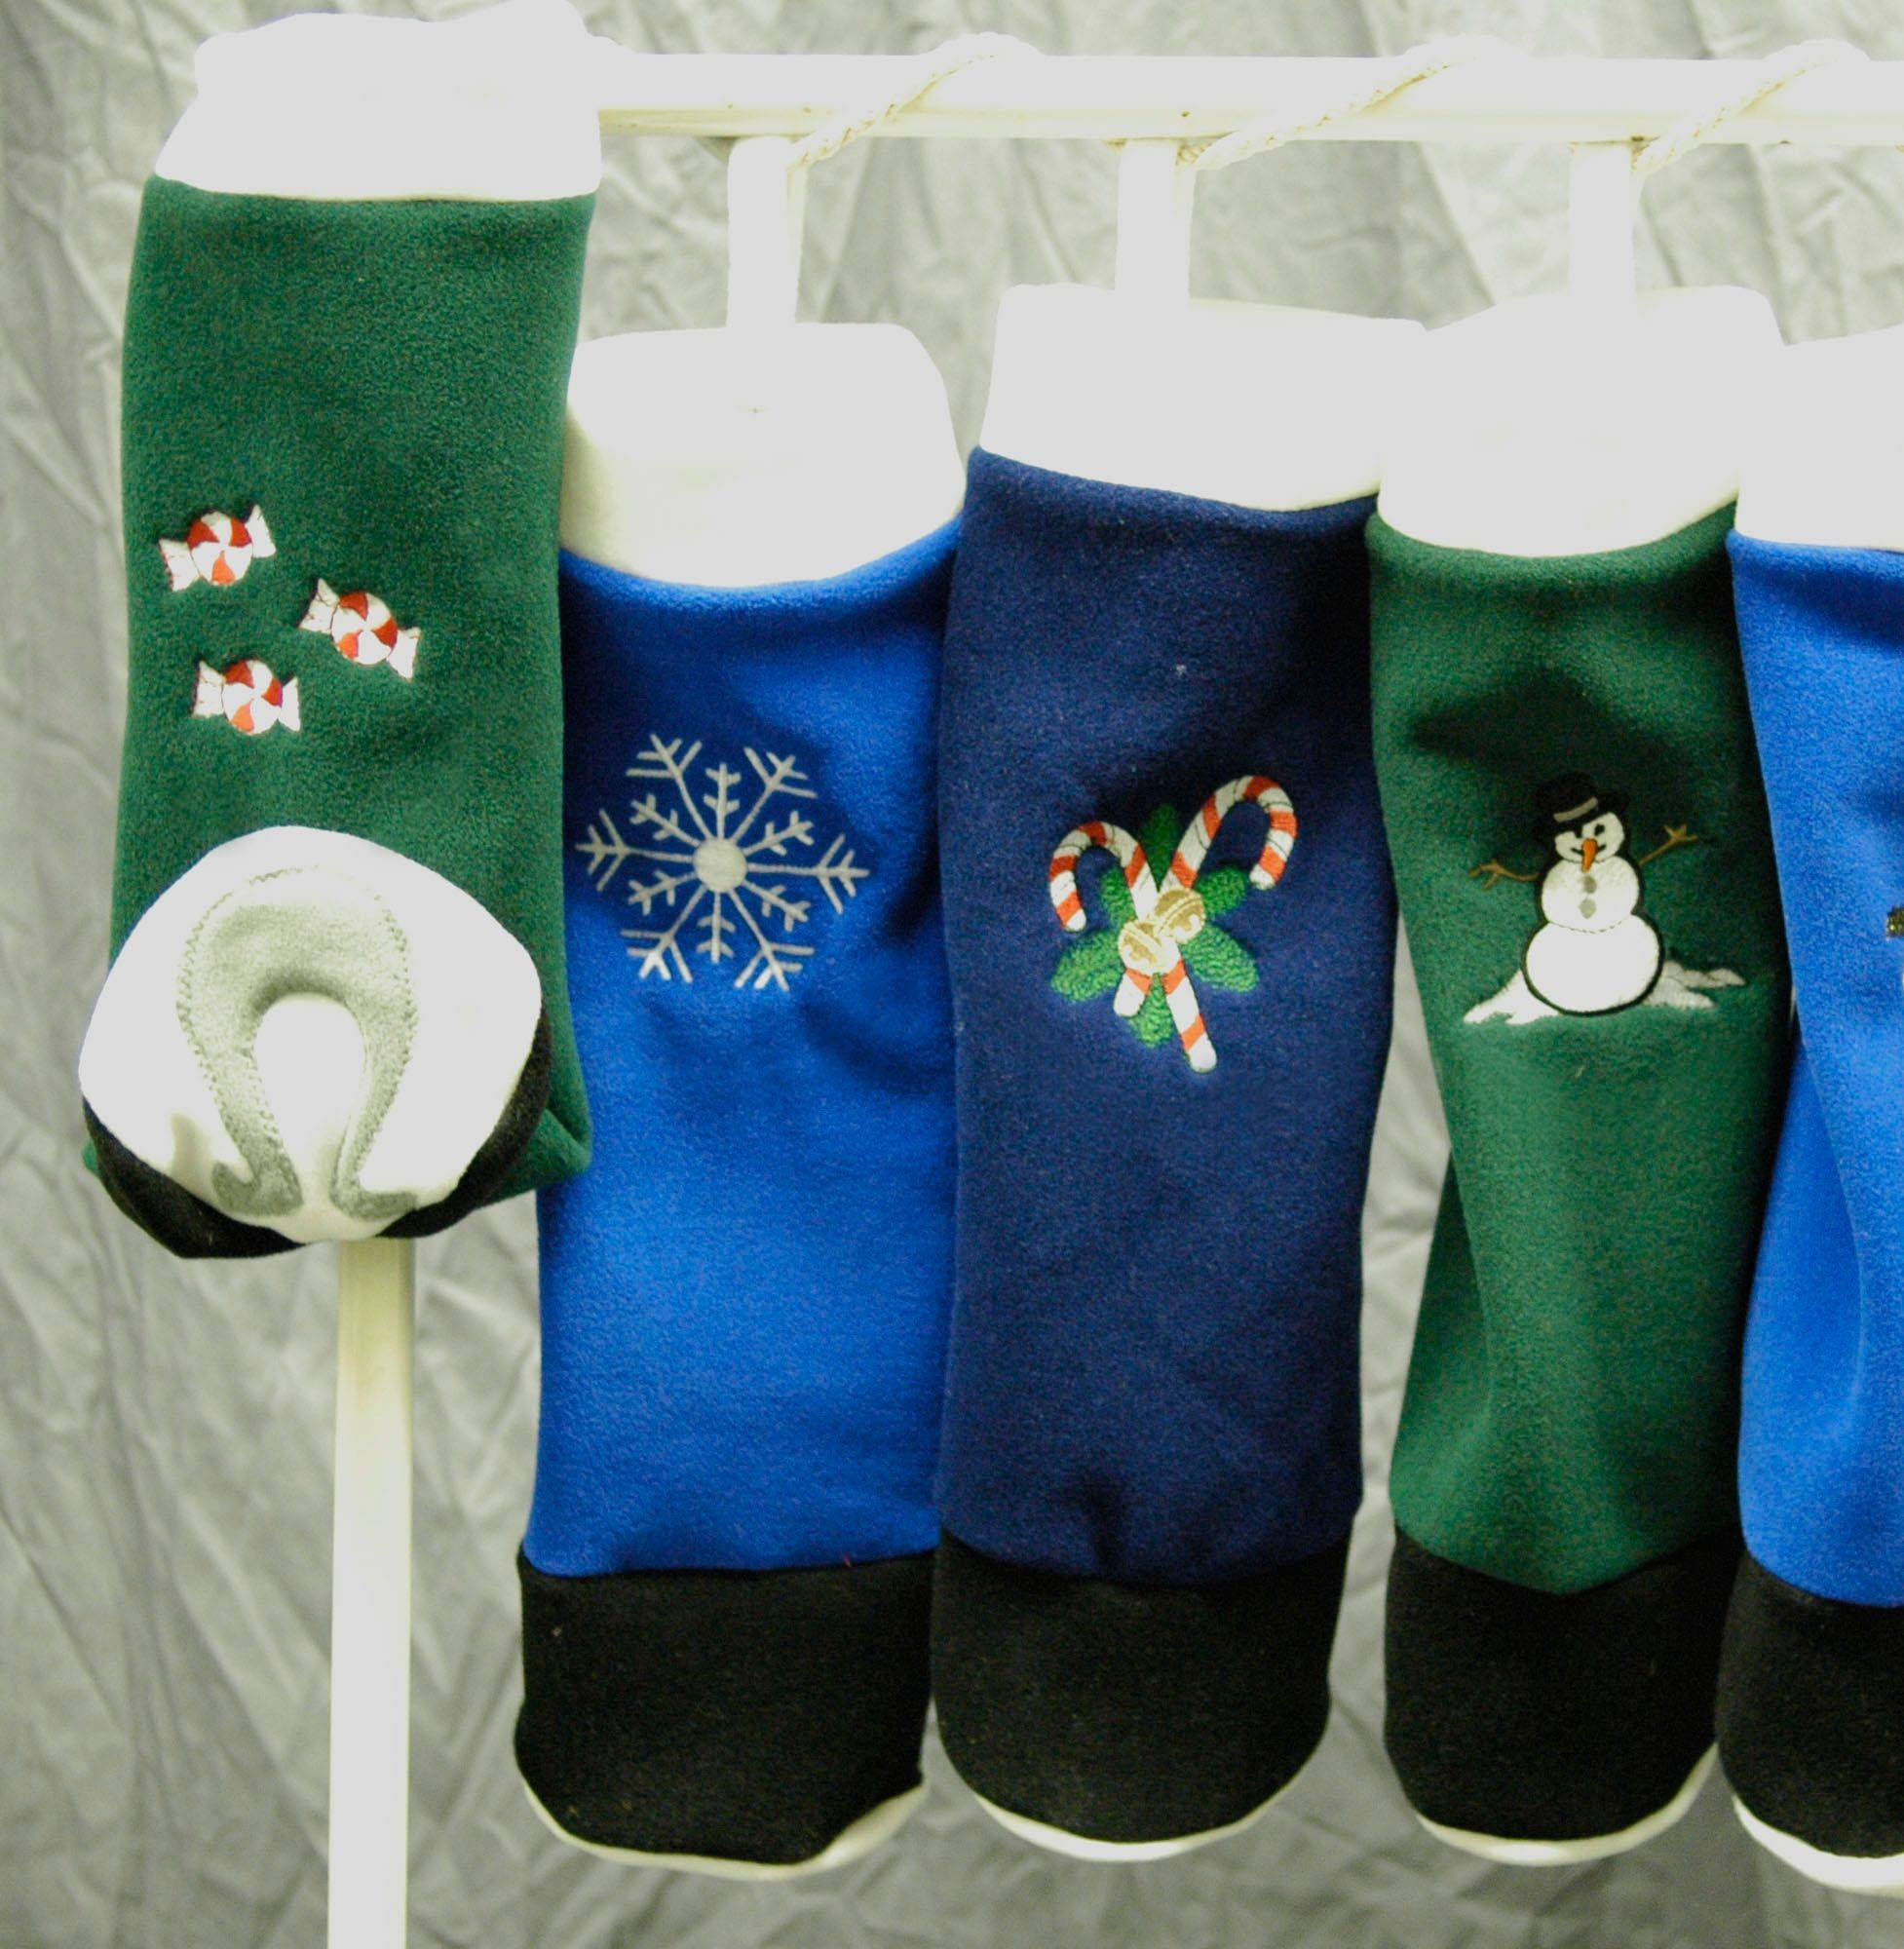 Saratoga Horseworks Christmas Hoof Stockings